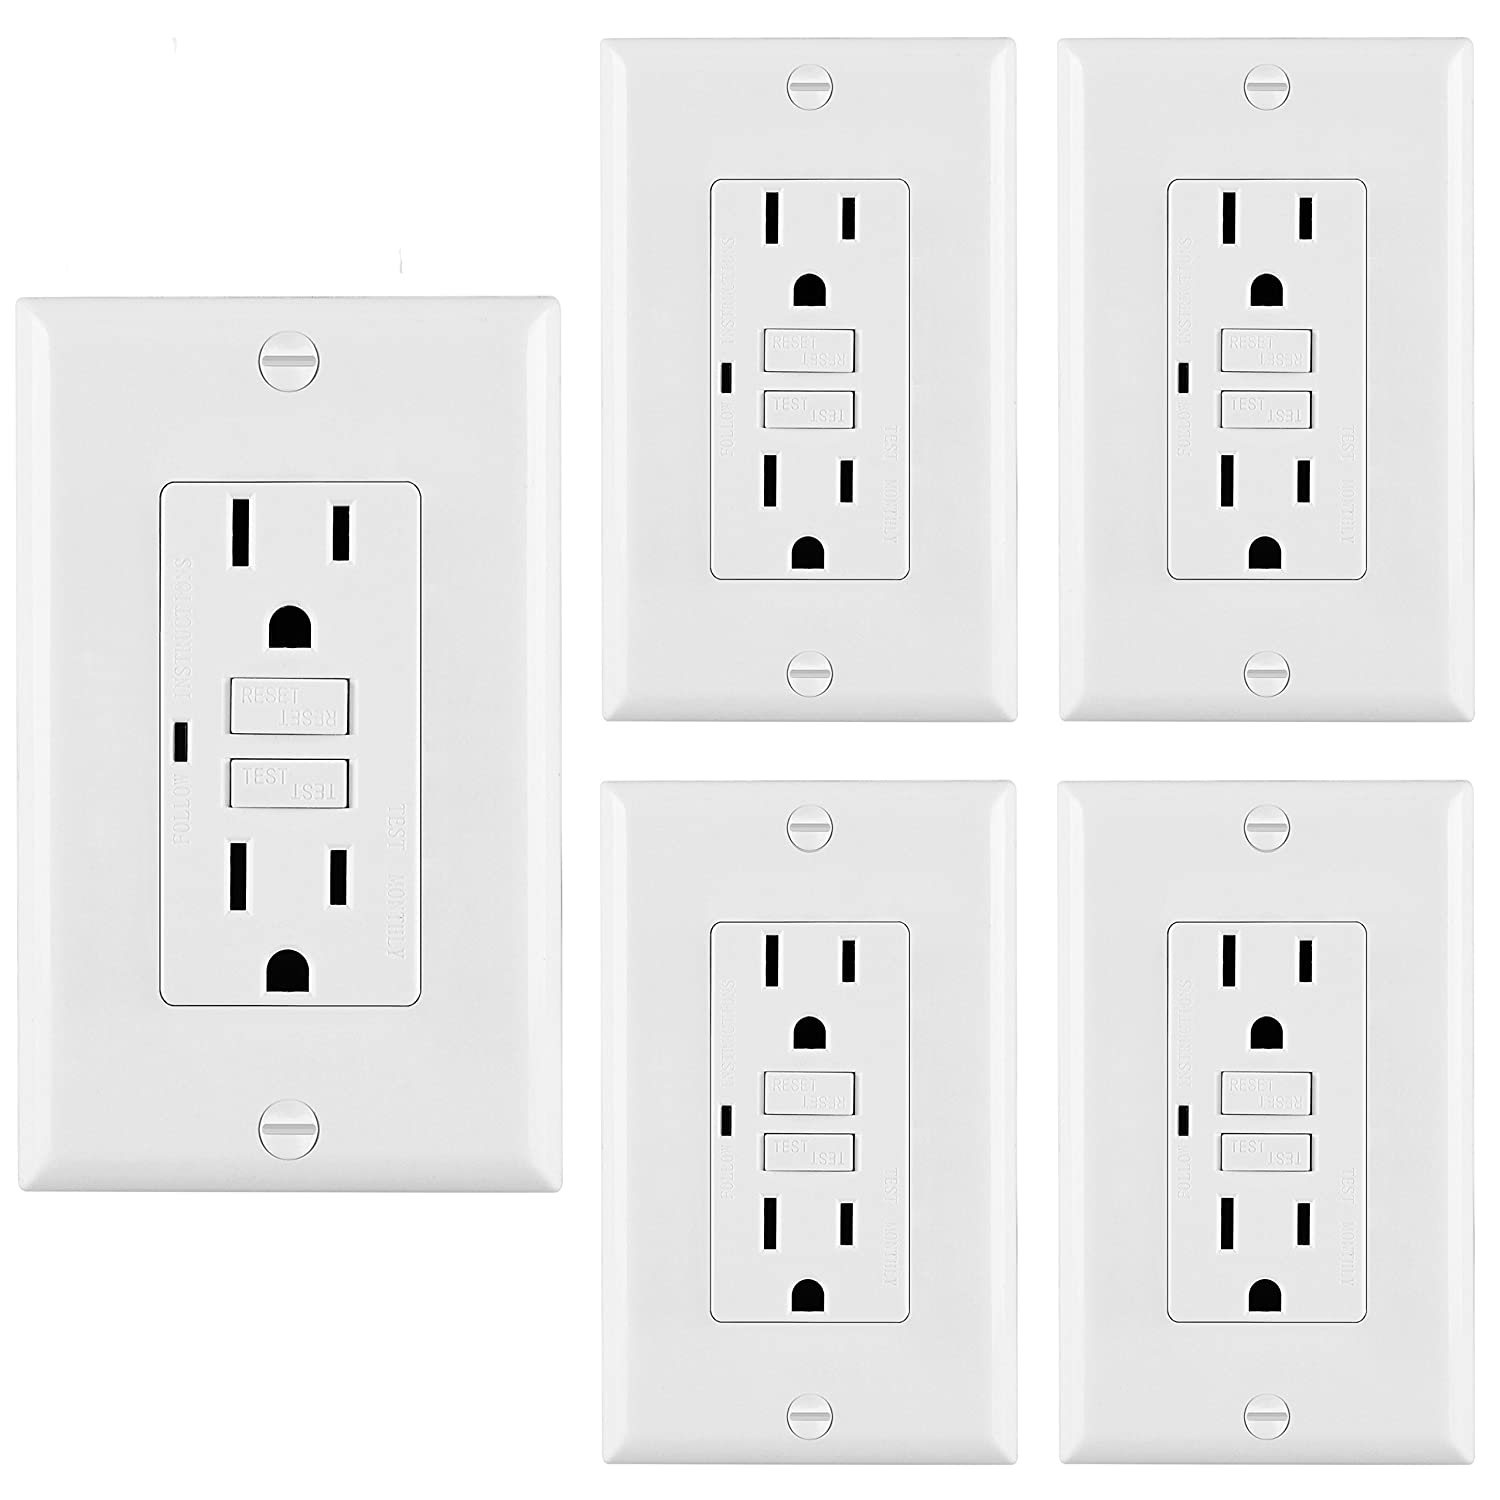 5 Pack Bestten Self Test Gfci Receptacle Outlet With Led Power Wiring Diagram As Well Internal On 3 Phase Indicator 15a125v 1875w Decorator Wall Plate Included Auto Function Ul Certified